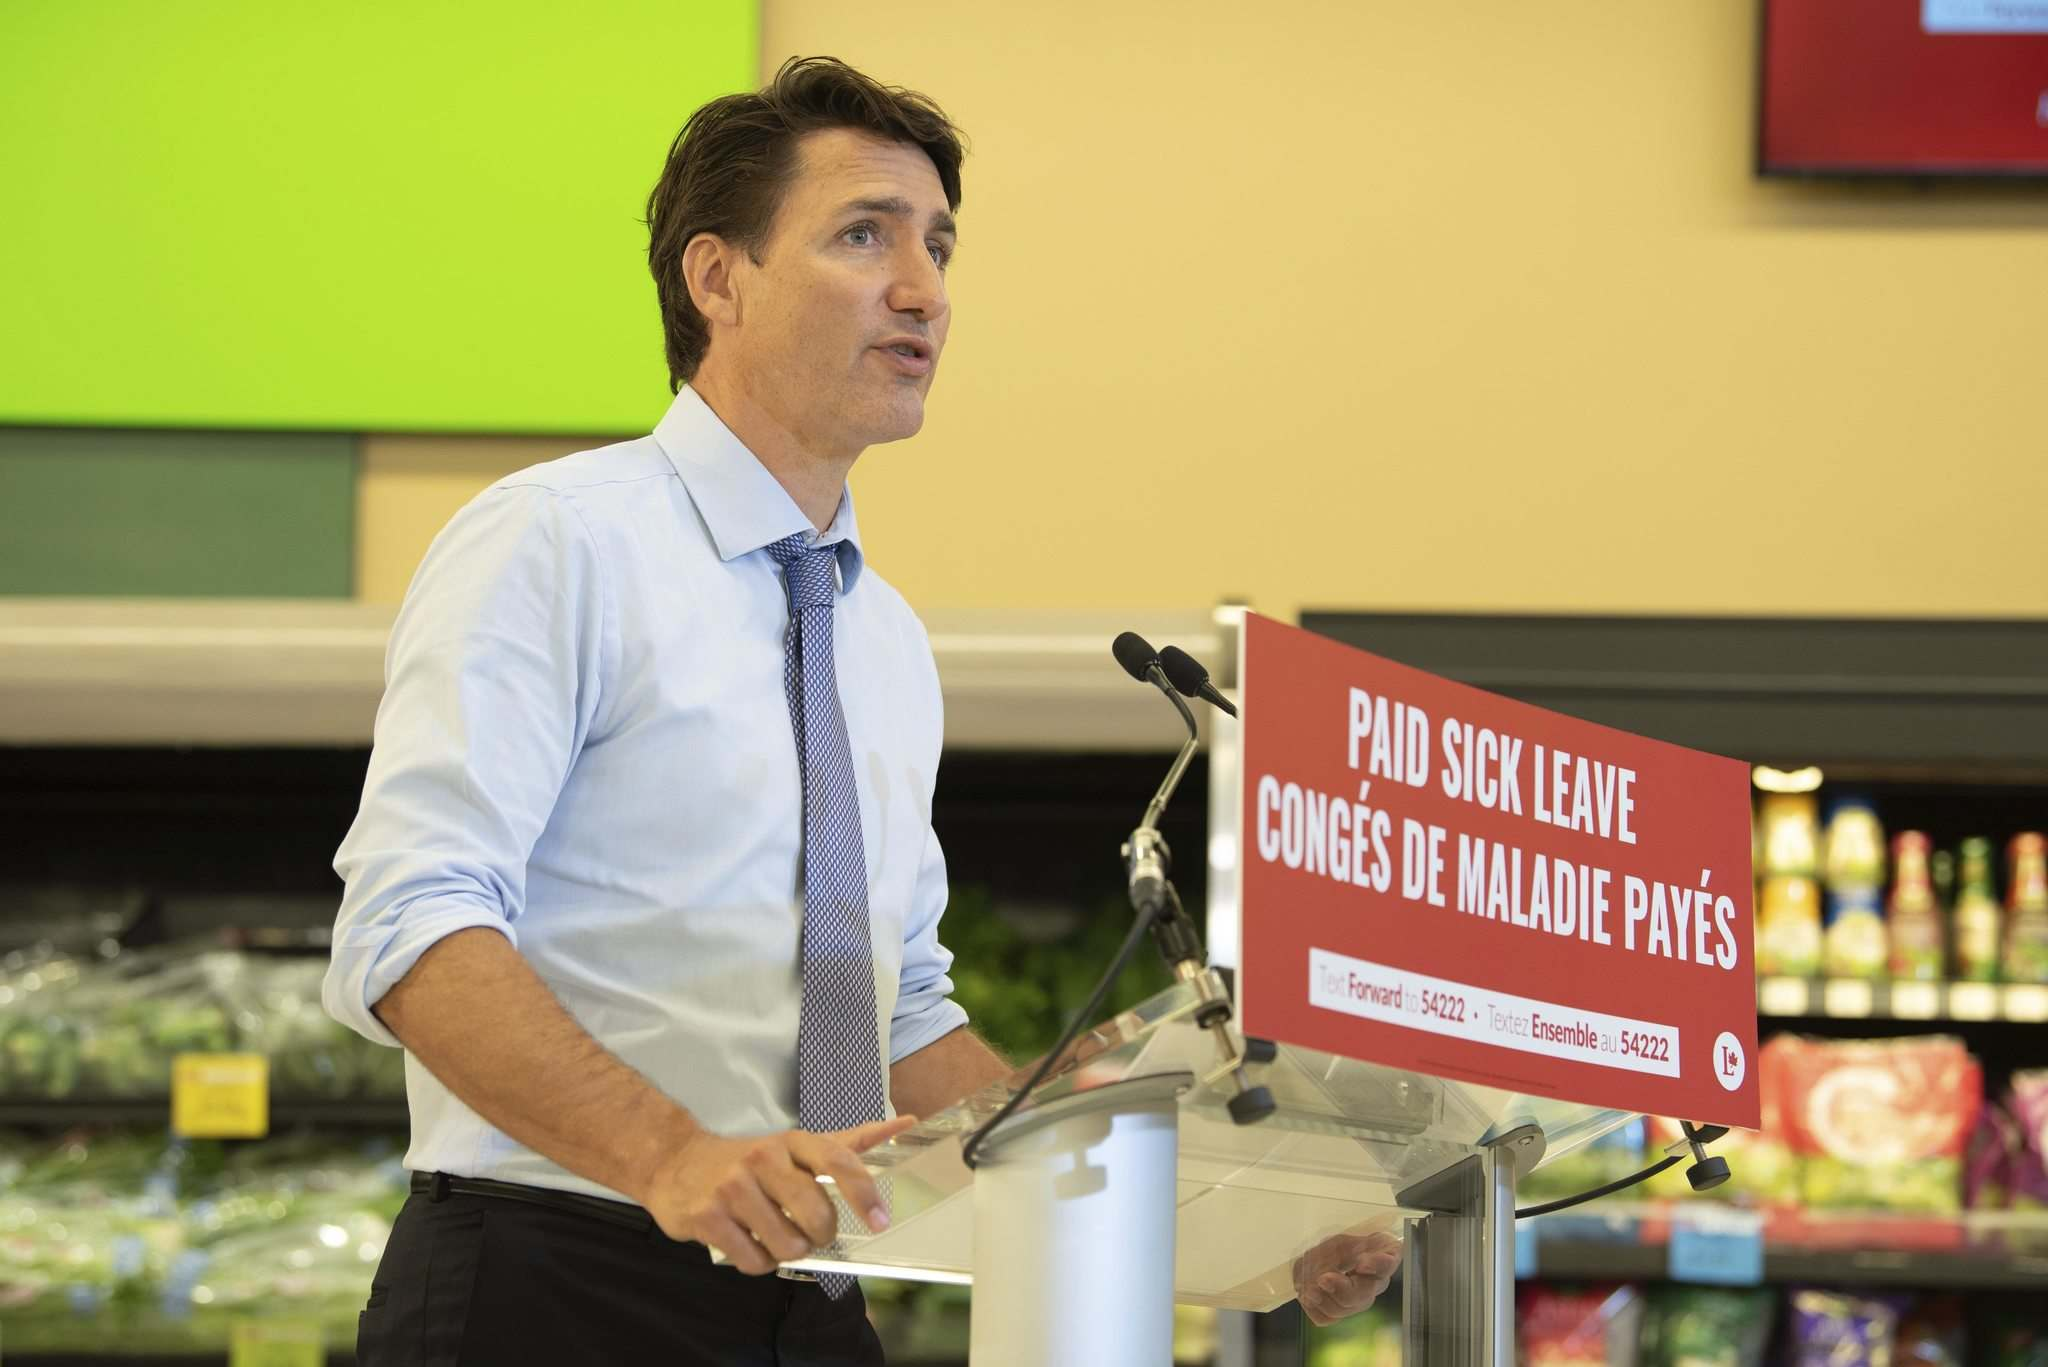 Since the writ dropped on Aug. 15, polls have showed support for Justin Trudeau's Liberal party headed in a mostly downward direction. (Alex Lupul / Winnipeg Free Press files)